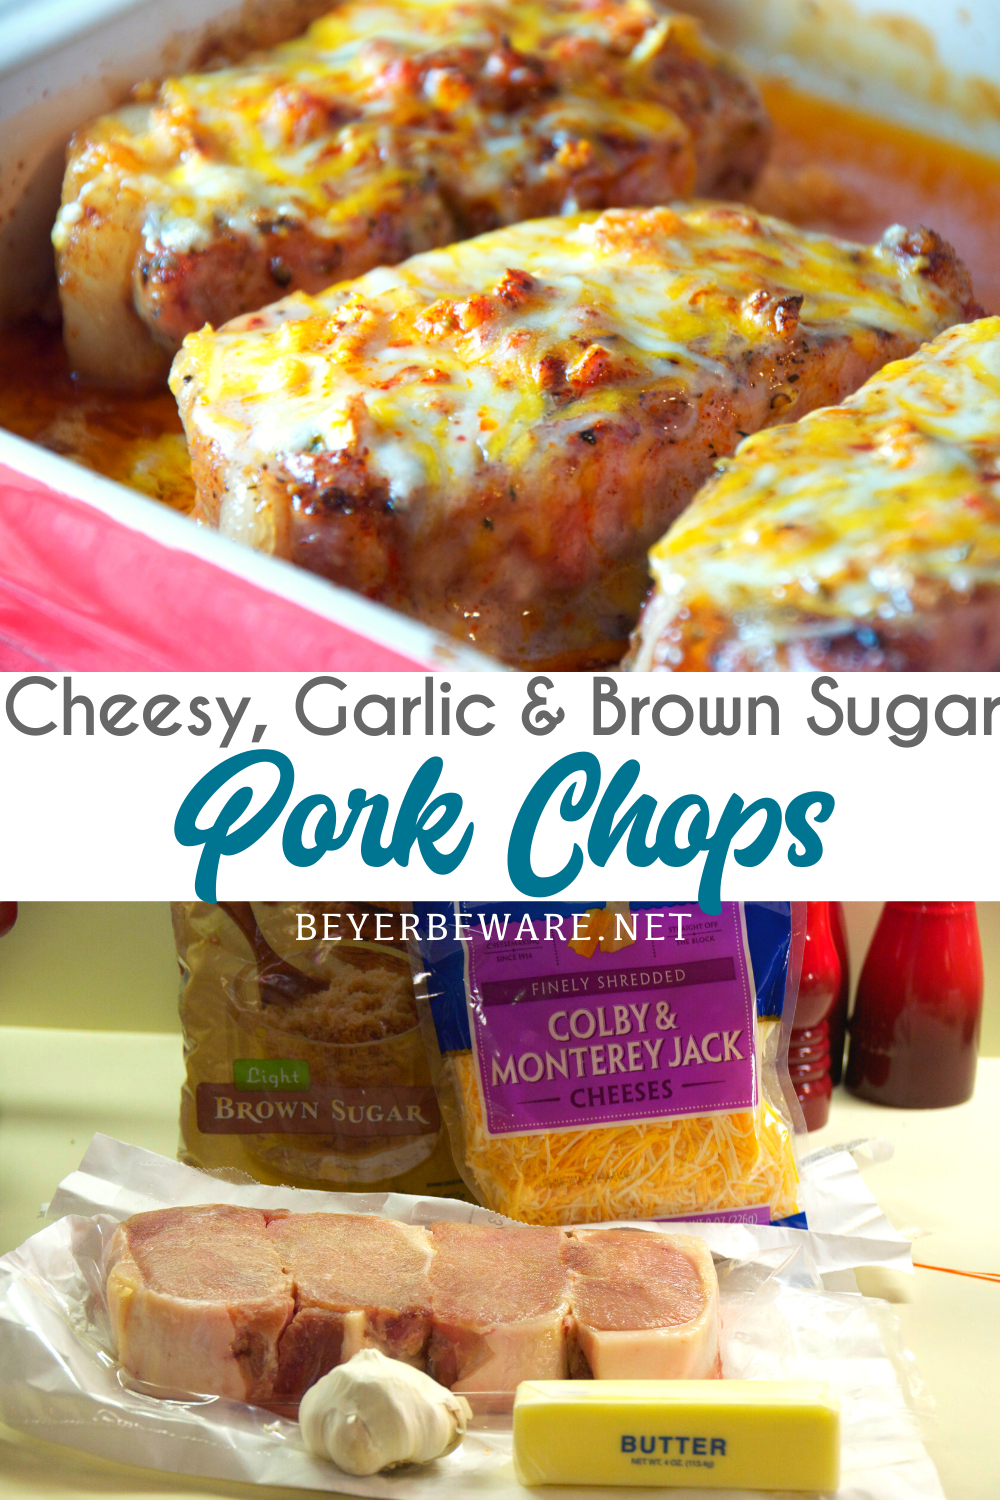 Cheesy garlic and brown sugar pork chops are a simple pork chops recipe cooked in the oven in under 30 minutes for an easy weeknight meal.